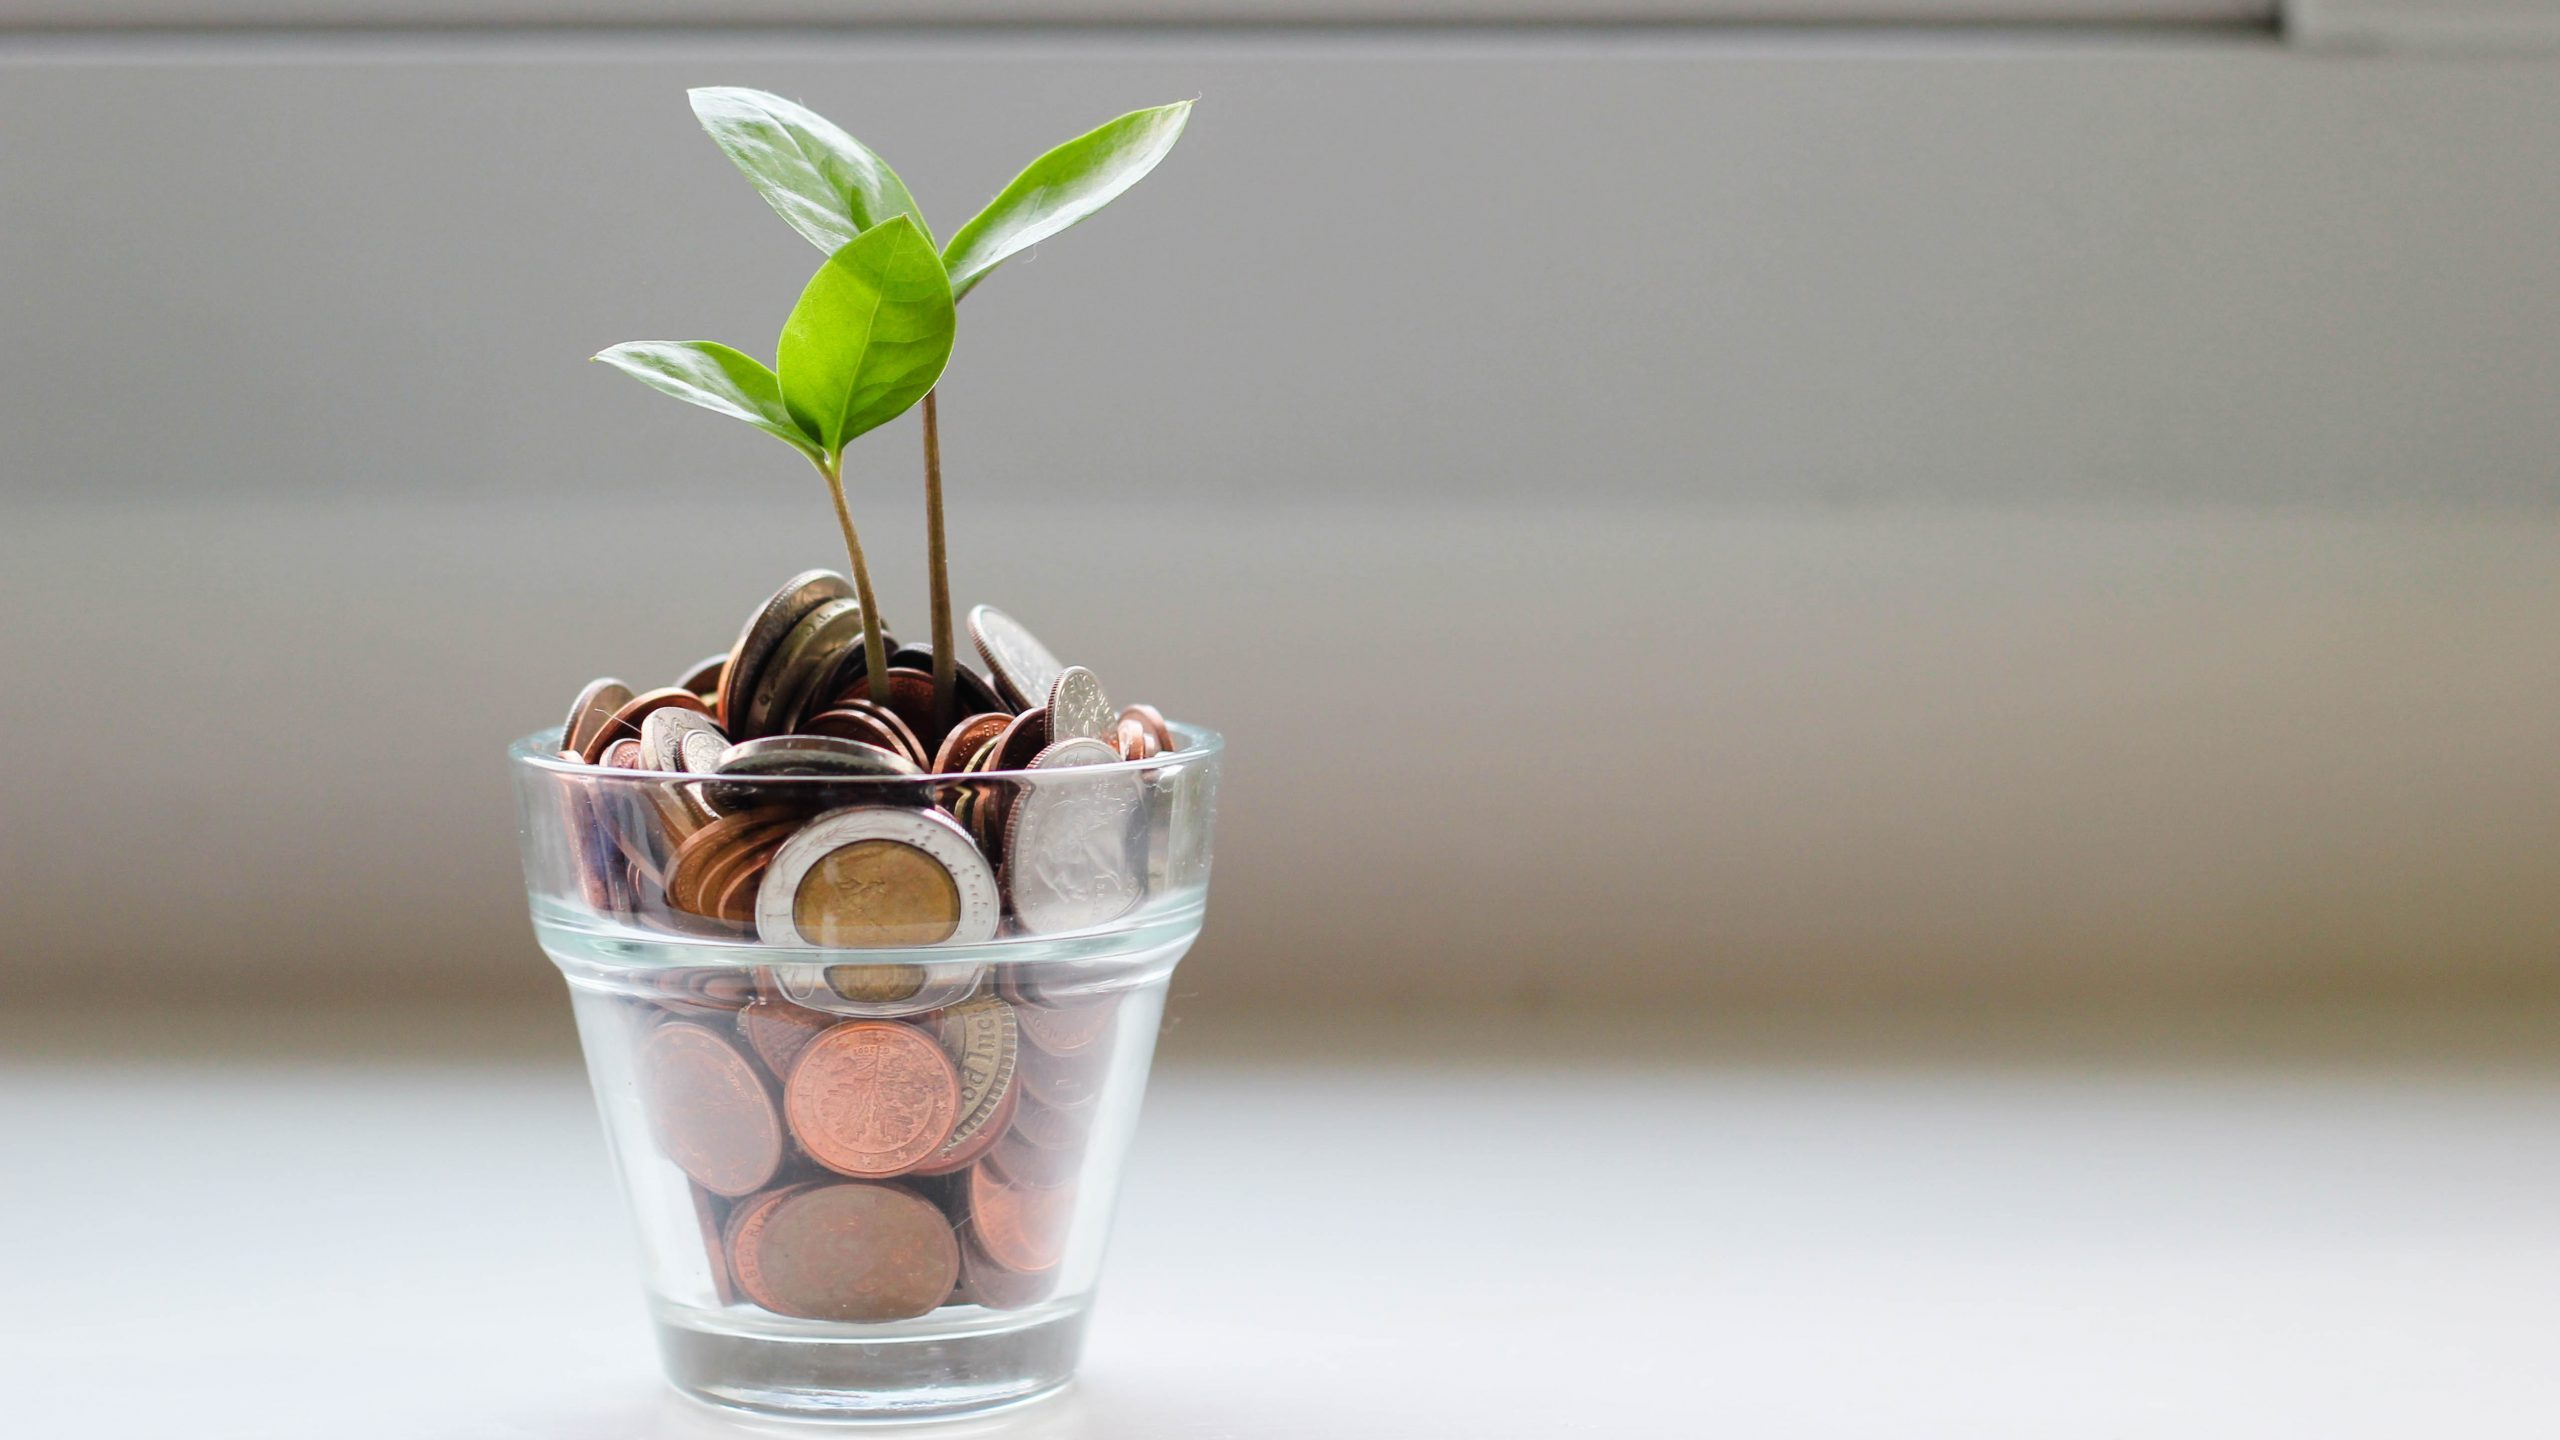 A small plant growing out of a translucent pot filled with coins